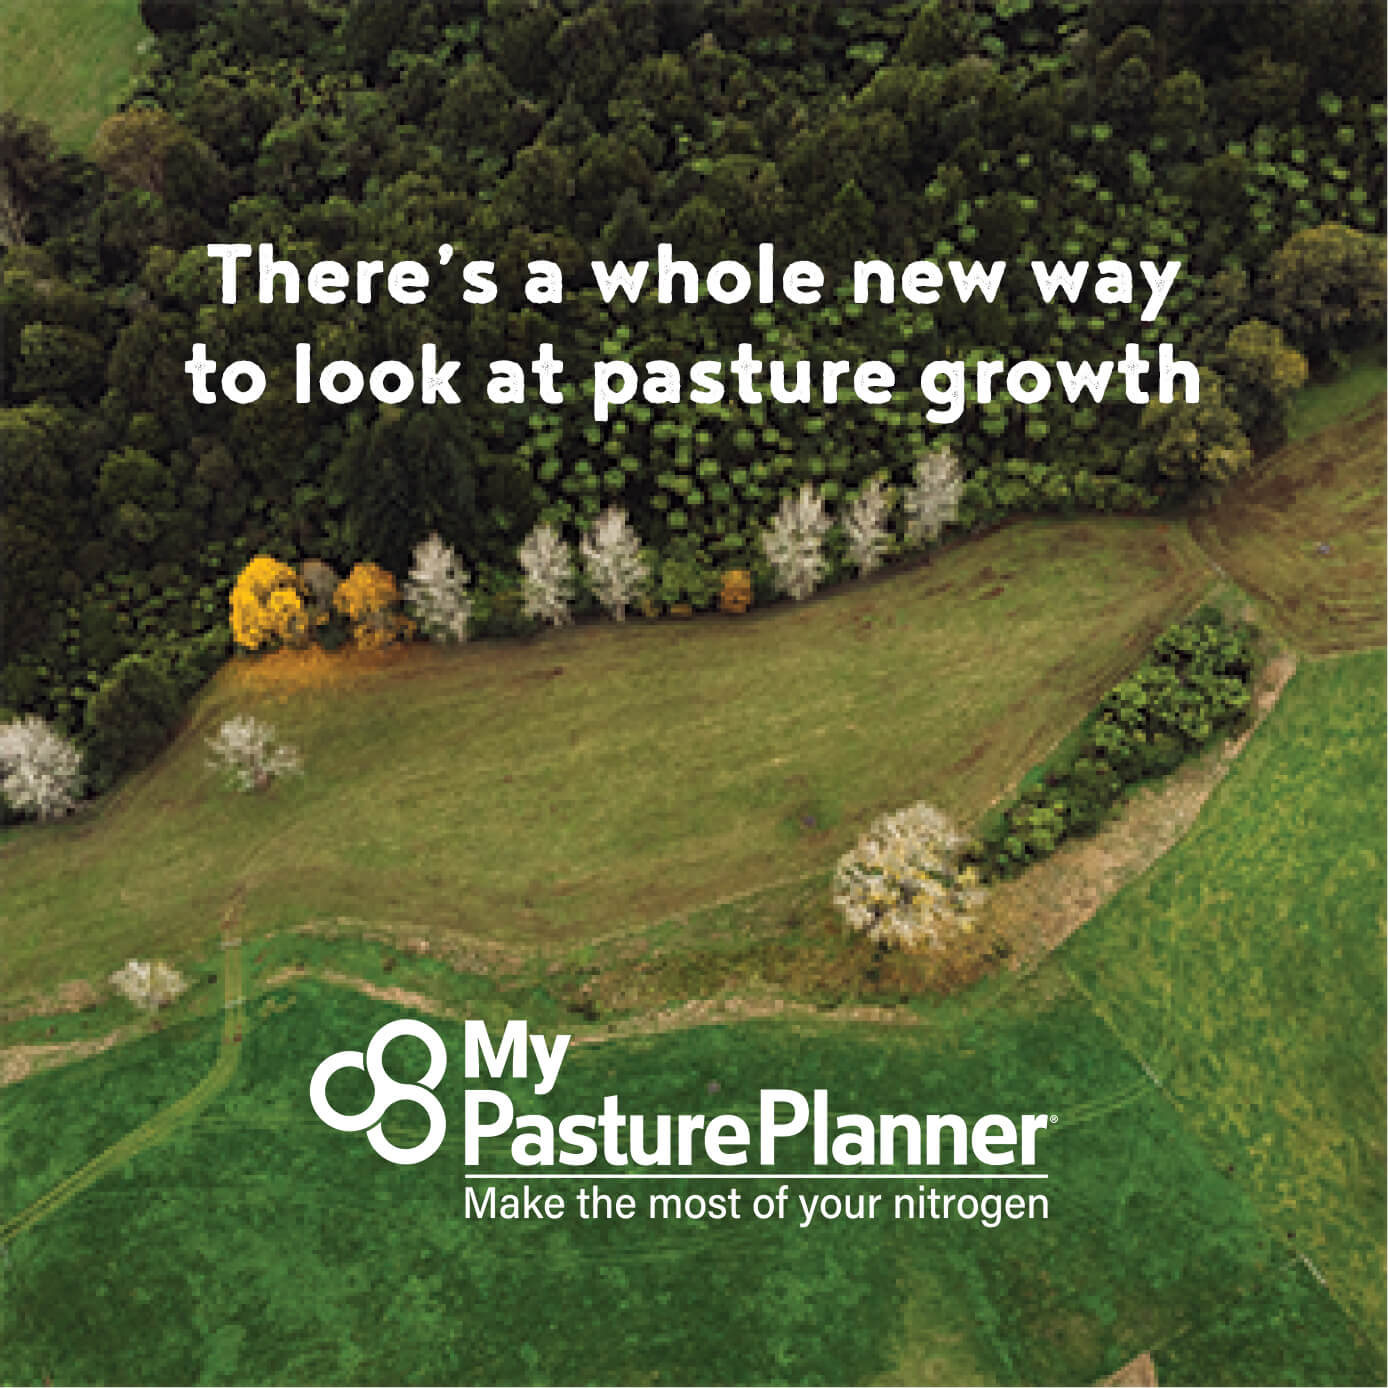 There's a whole new way to look at pasture growth